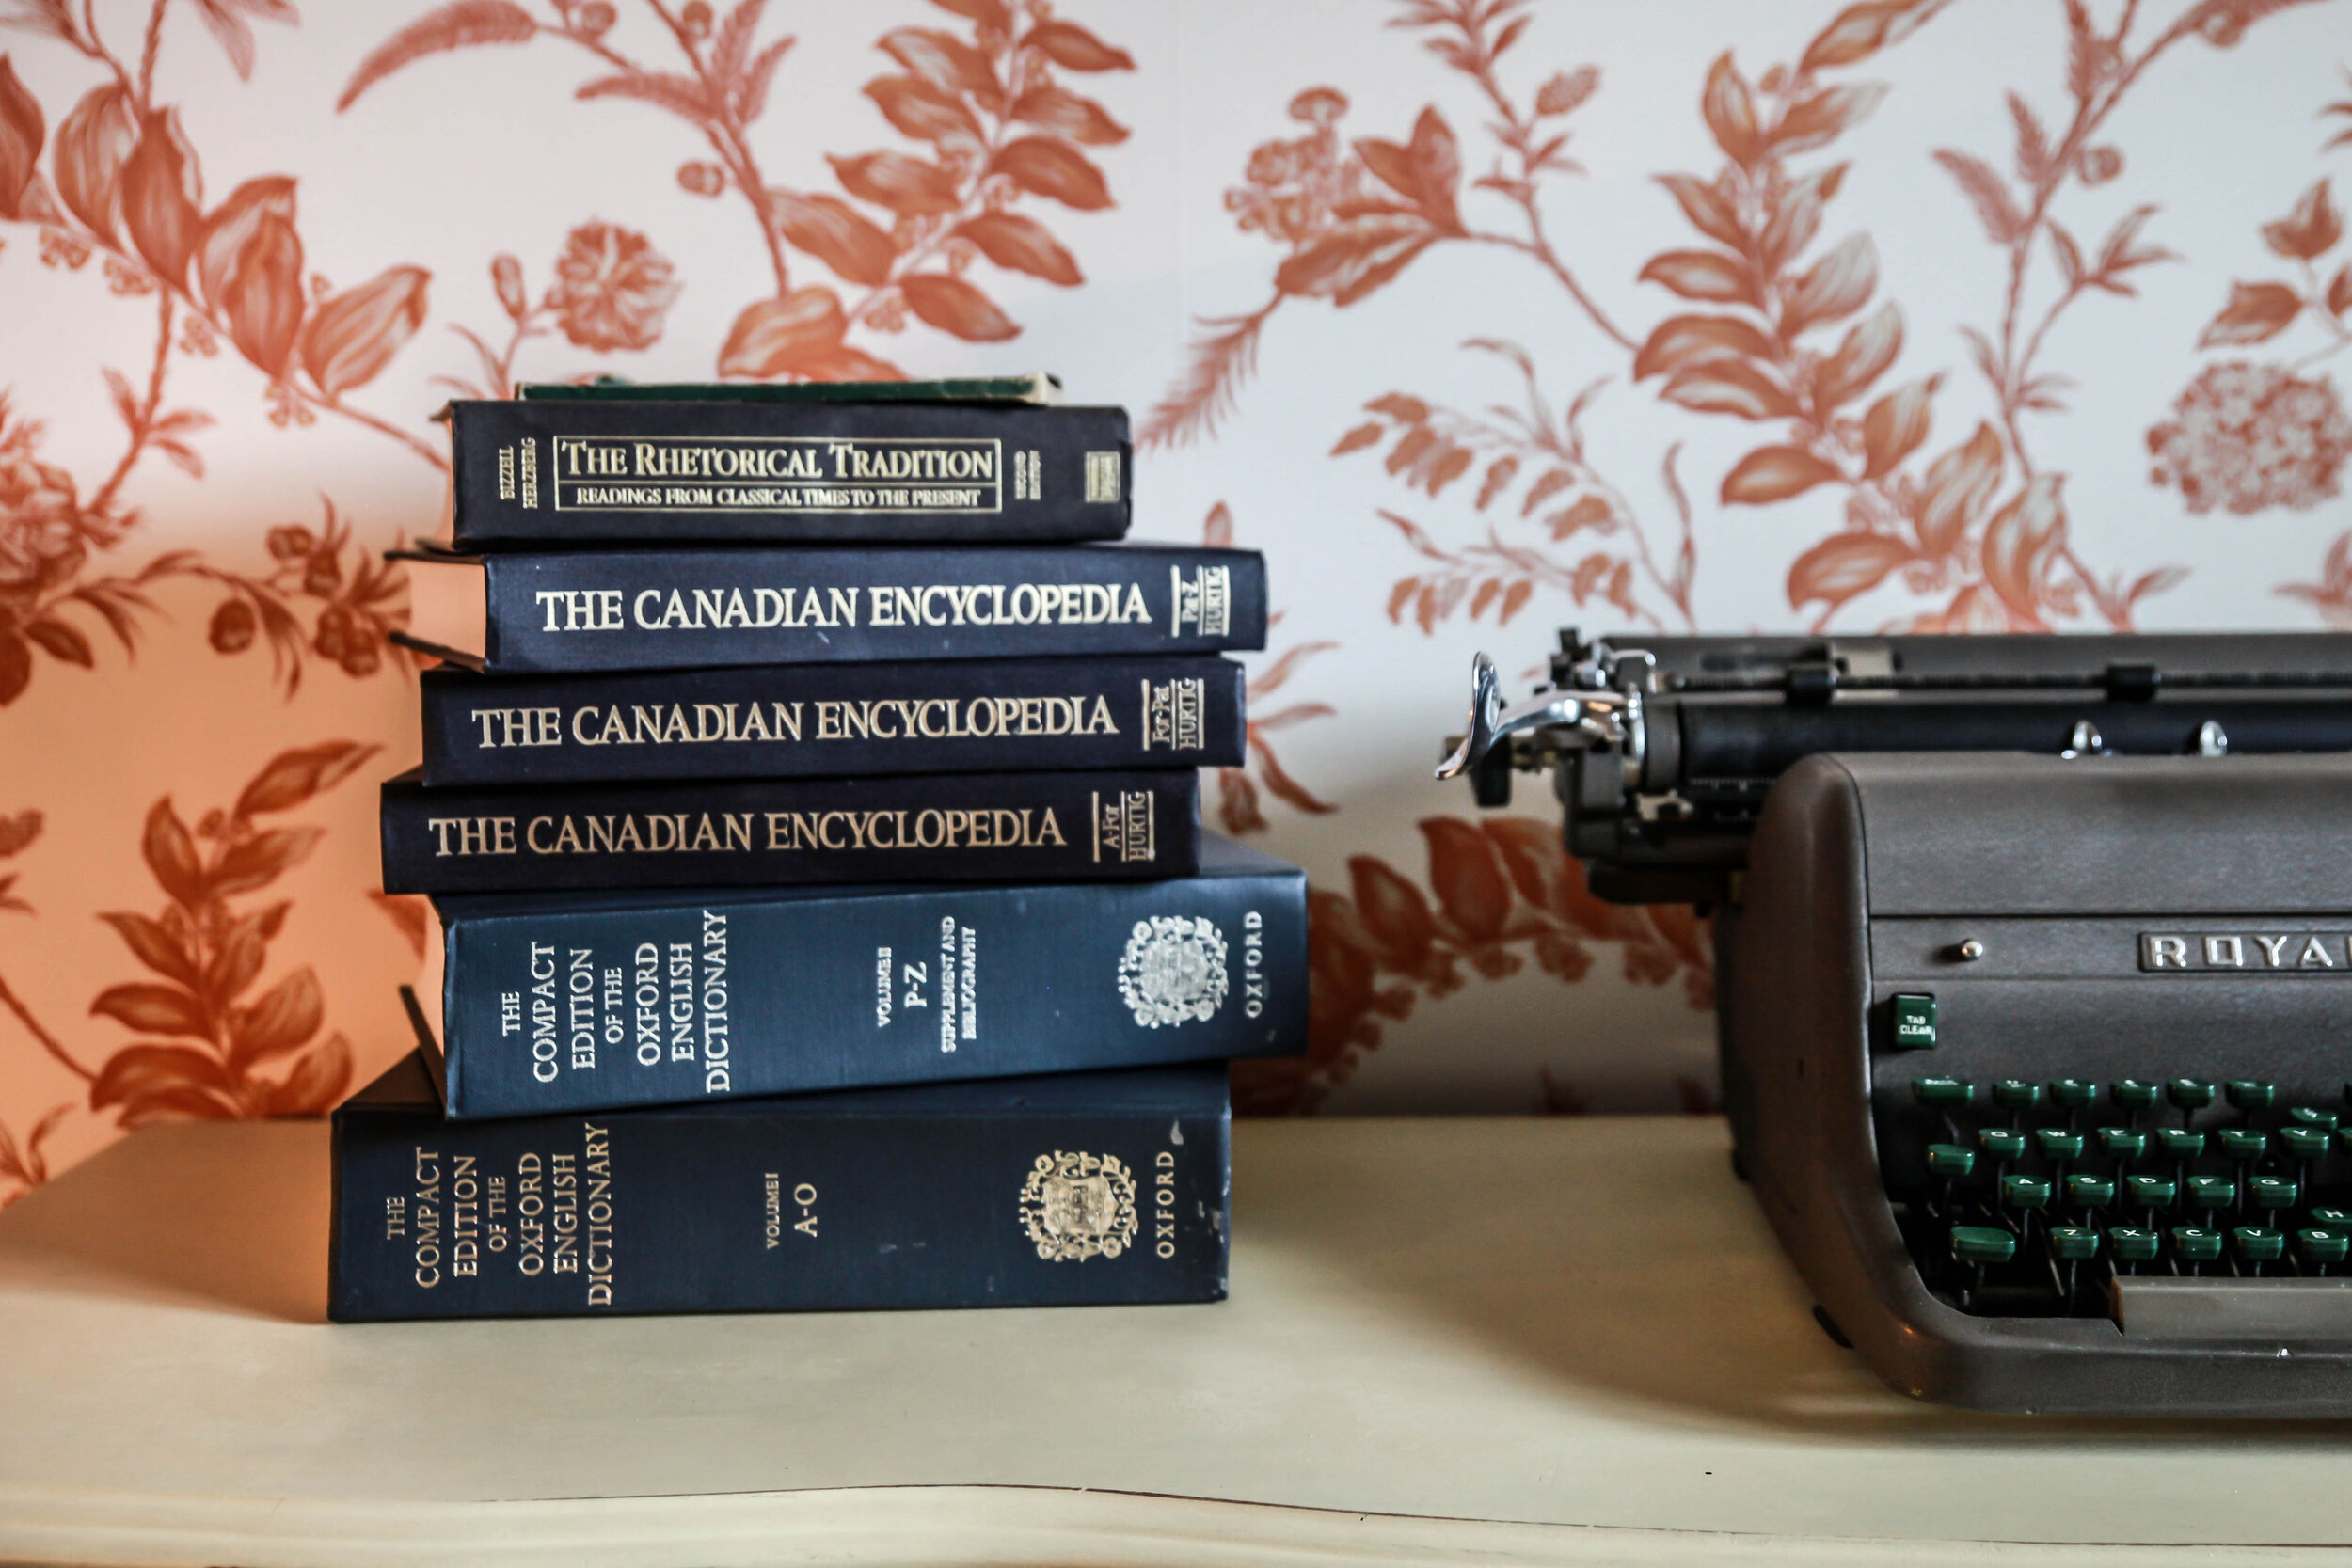 Stack of Oxford English Dictionaries and Canadian Encyclopedias beside a typerwriter.